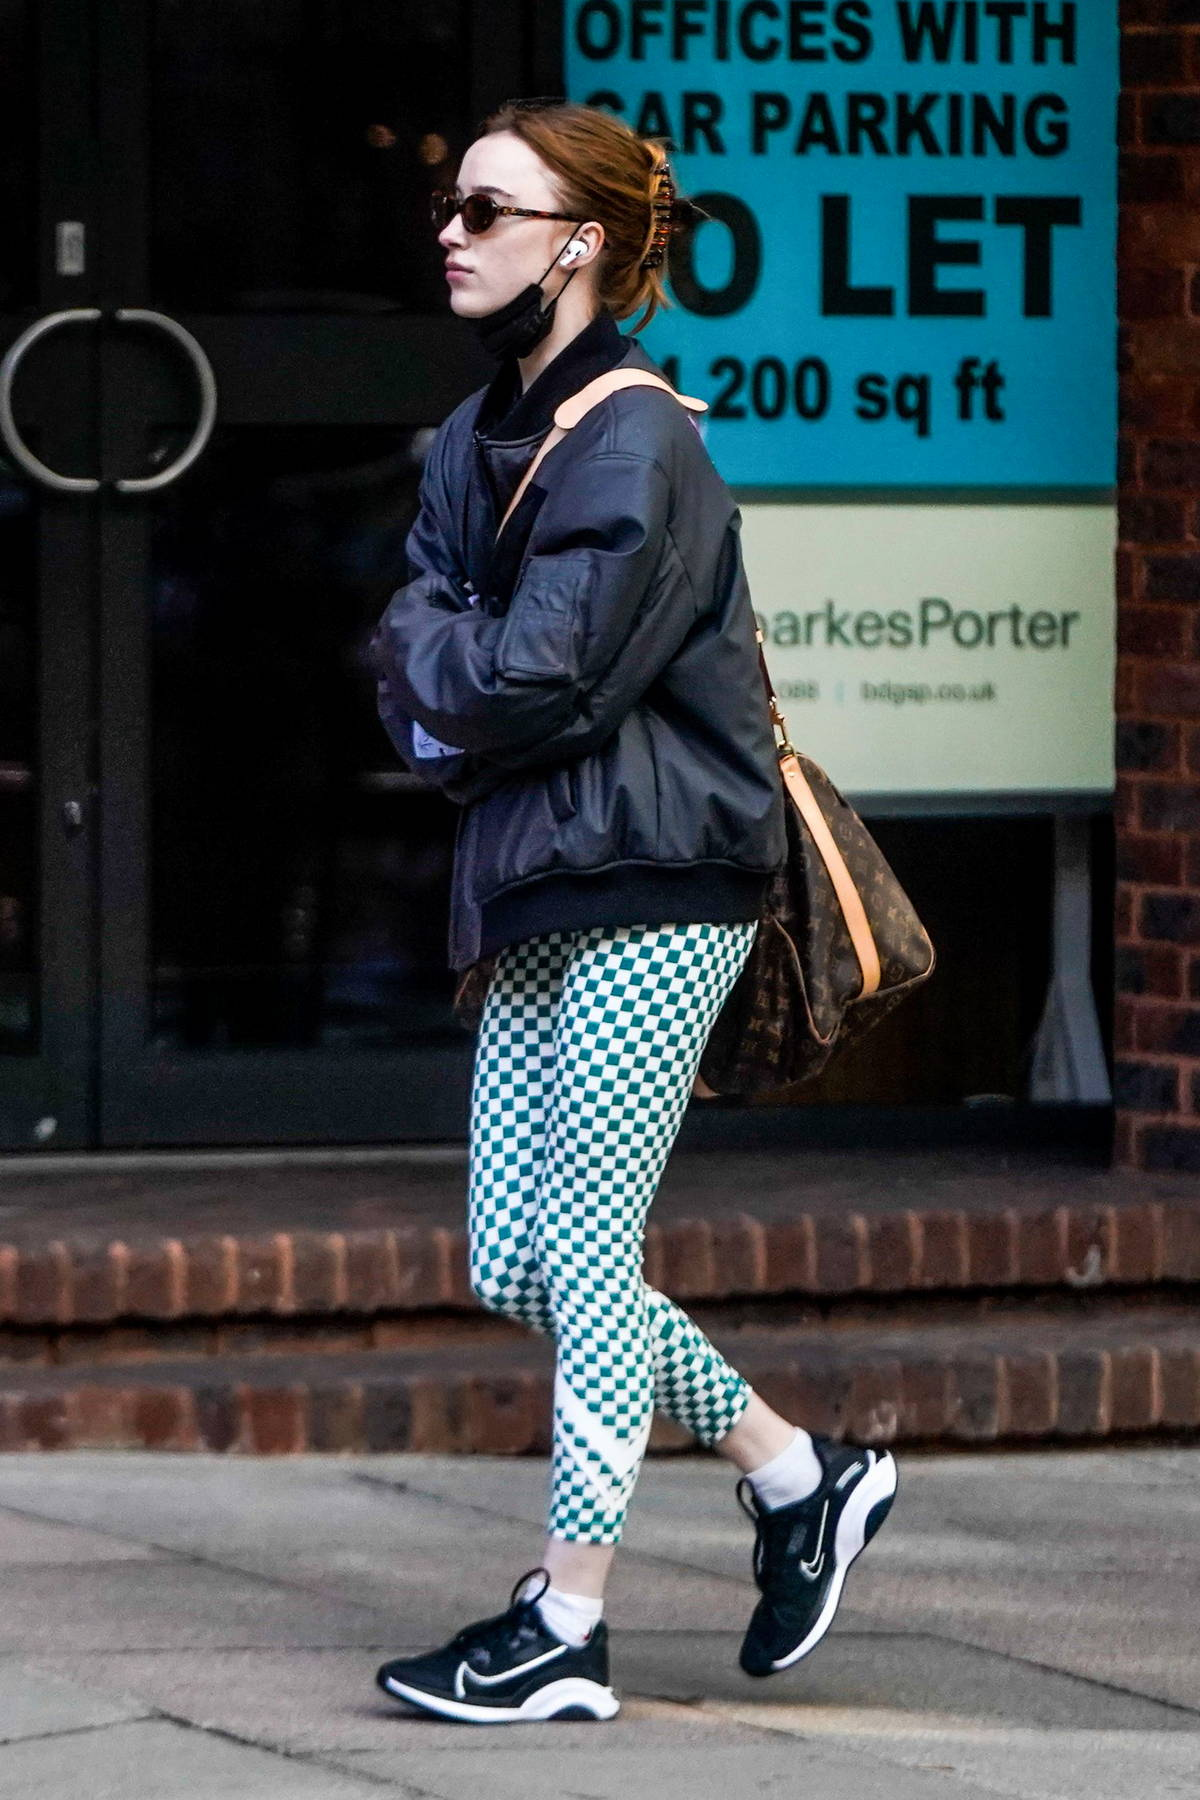 Phoebe Dynevor looks sporty in checkered leggings, sneakers and black jacket while stepping out in London, UK